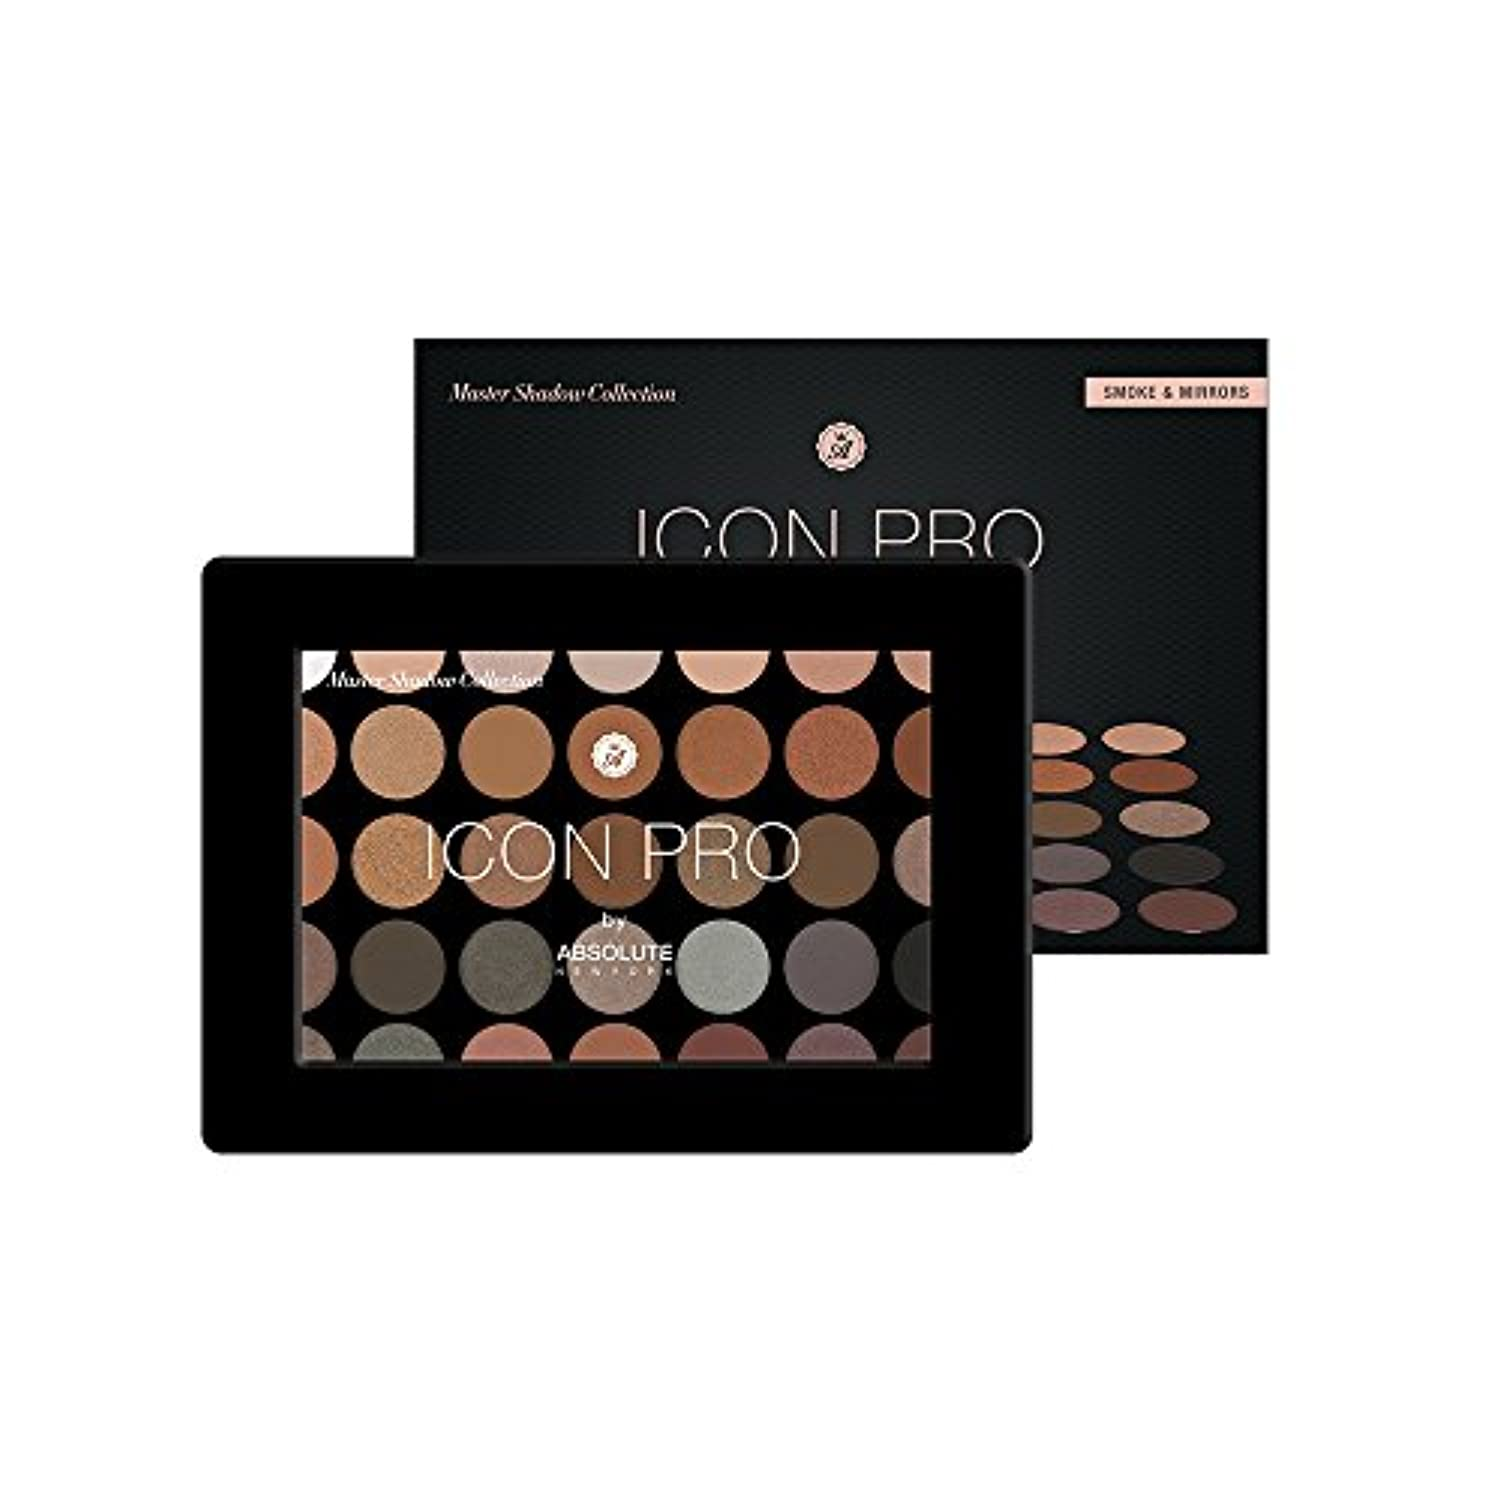 ABSOLUTE Icon Pro Palette - Smoke & Mirrors (並行輸入品)